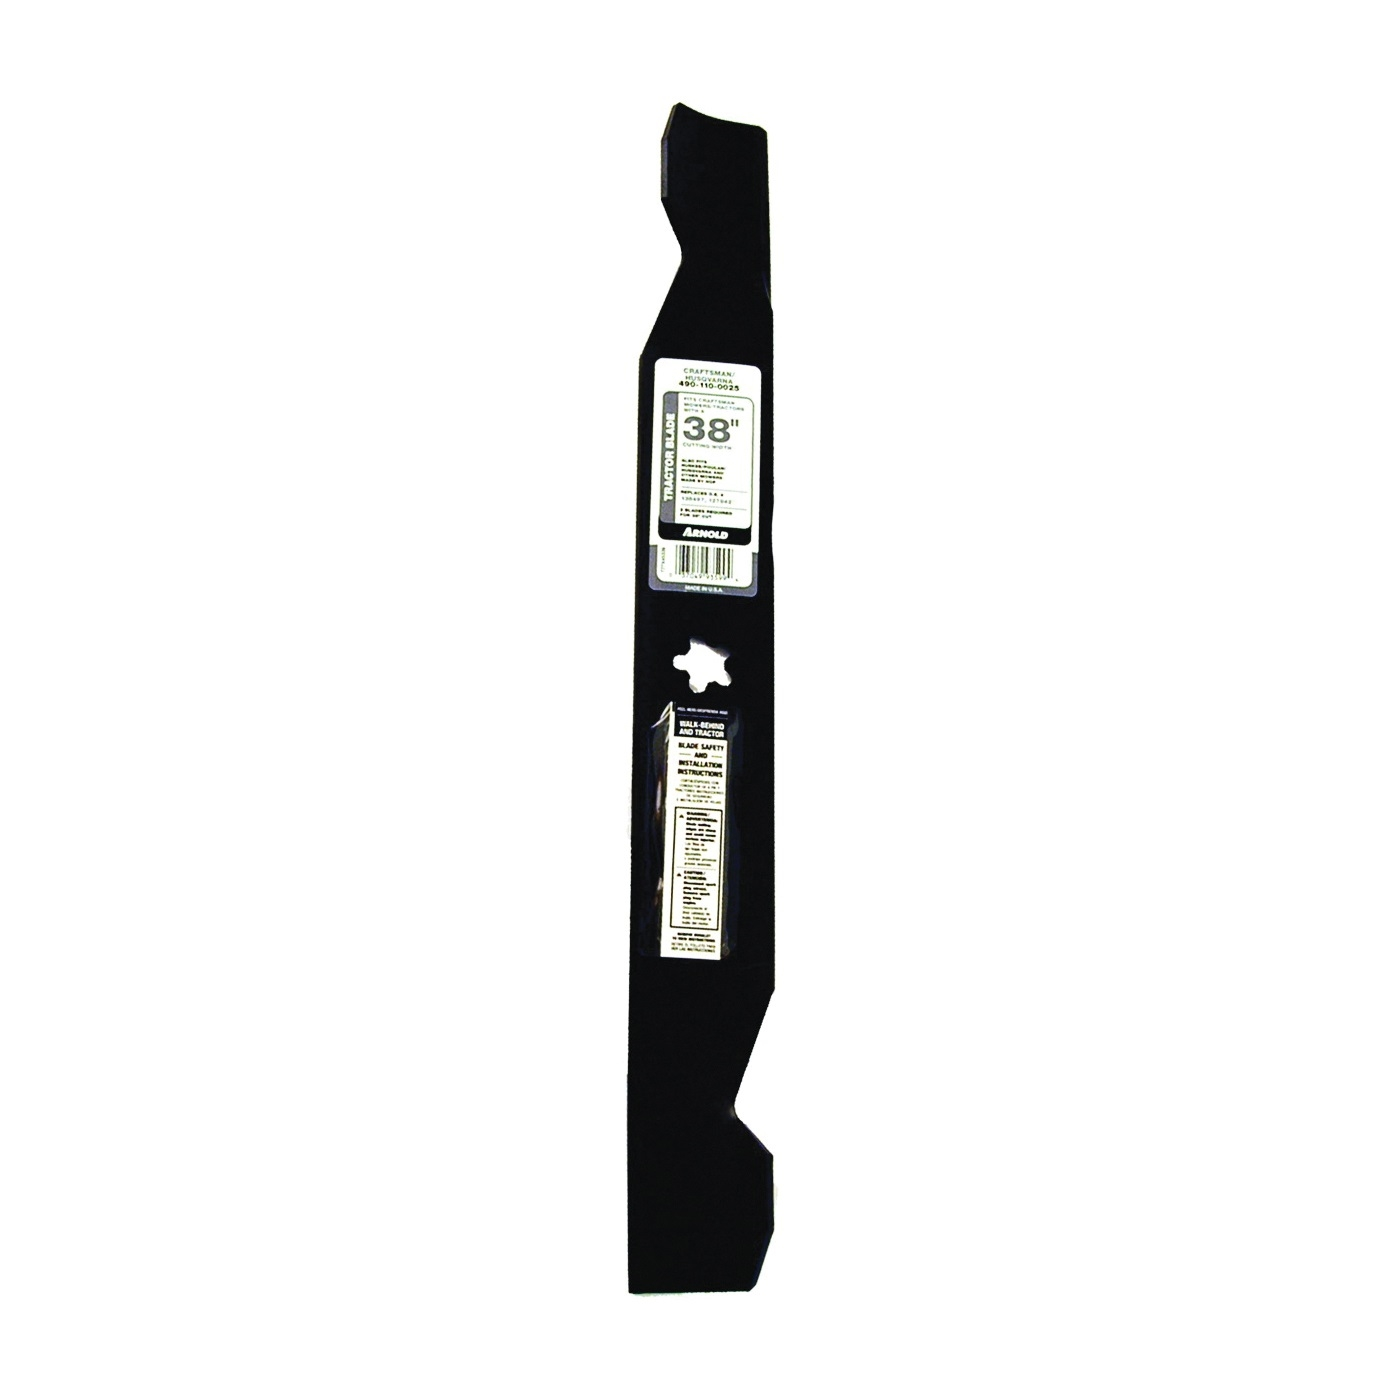 Picture of ARNOLD 490-110-0025 Lawn Mower Blade, 19-5/16 in L